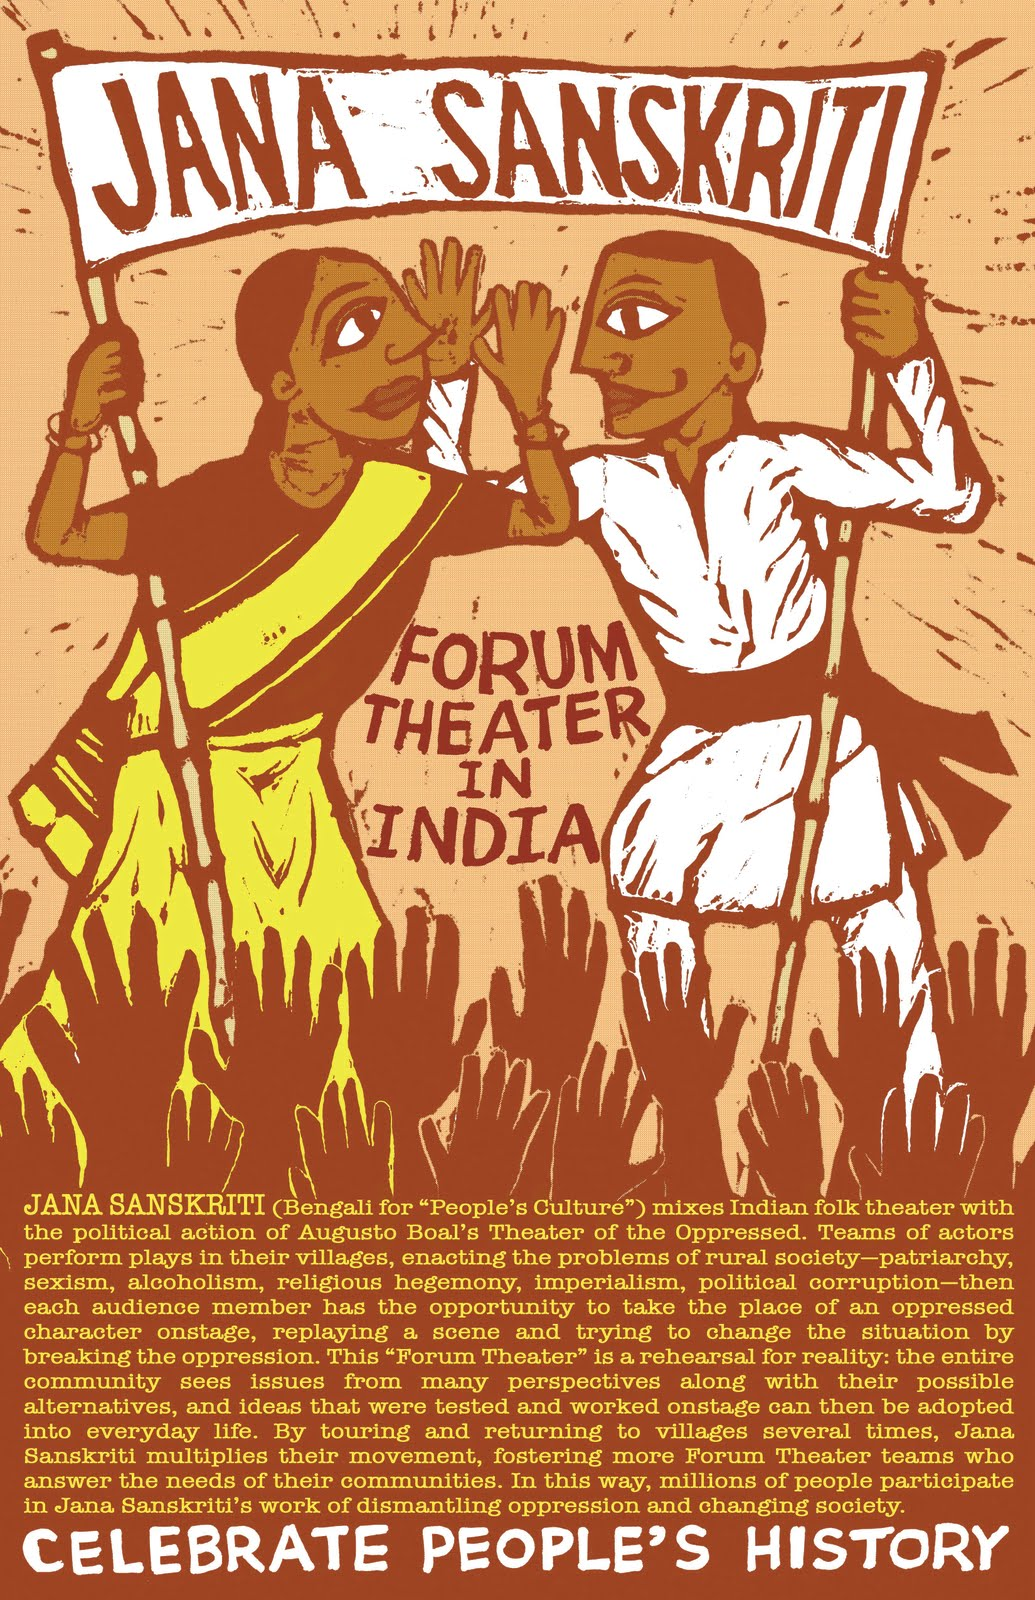 Its Finally Here The Celebrate Peoples History Poster About Jana Sanskriti Indias Theatre Of Oppressed Movement Founded In Villages West